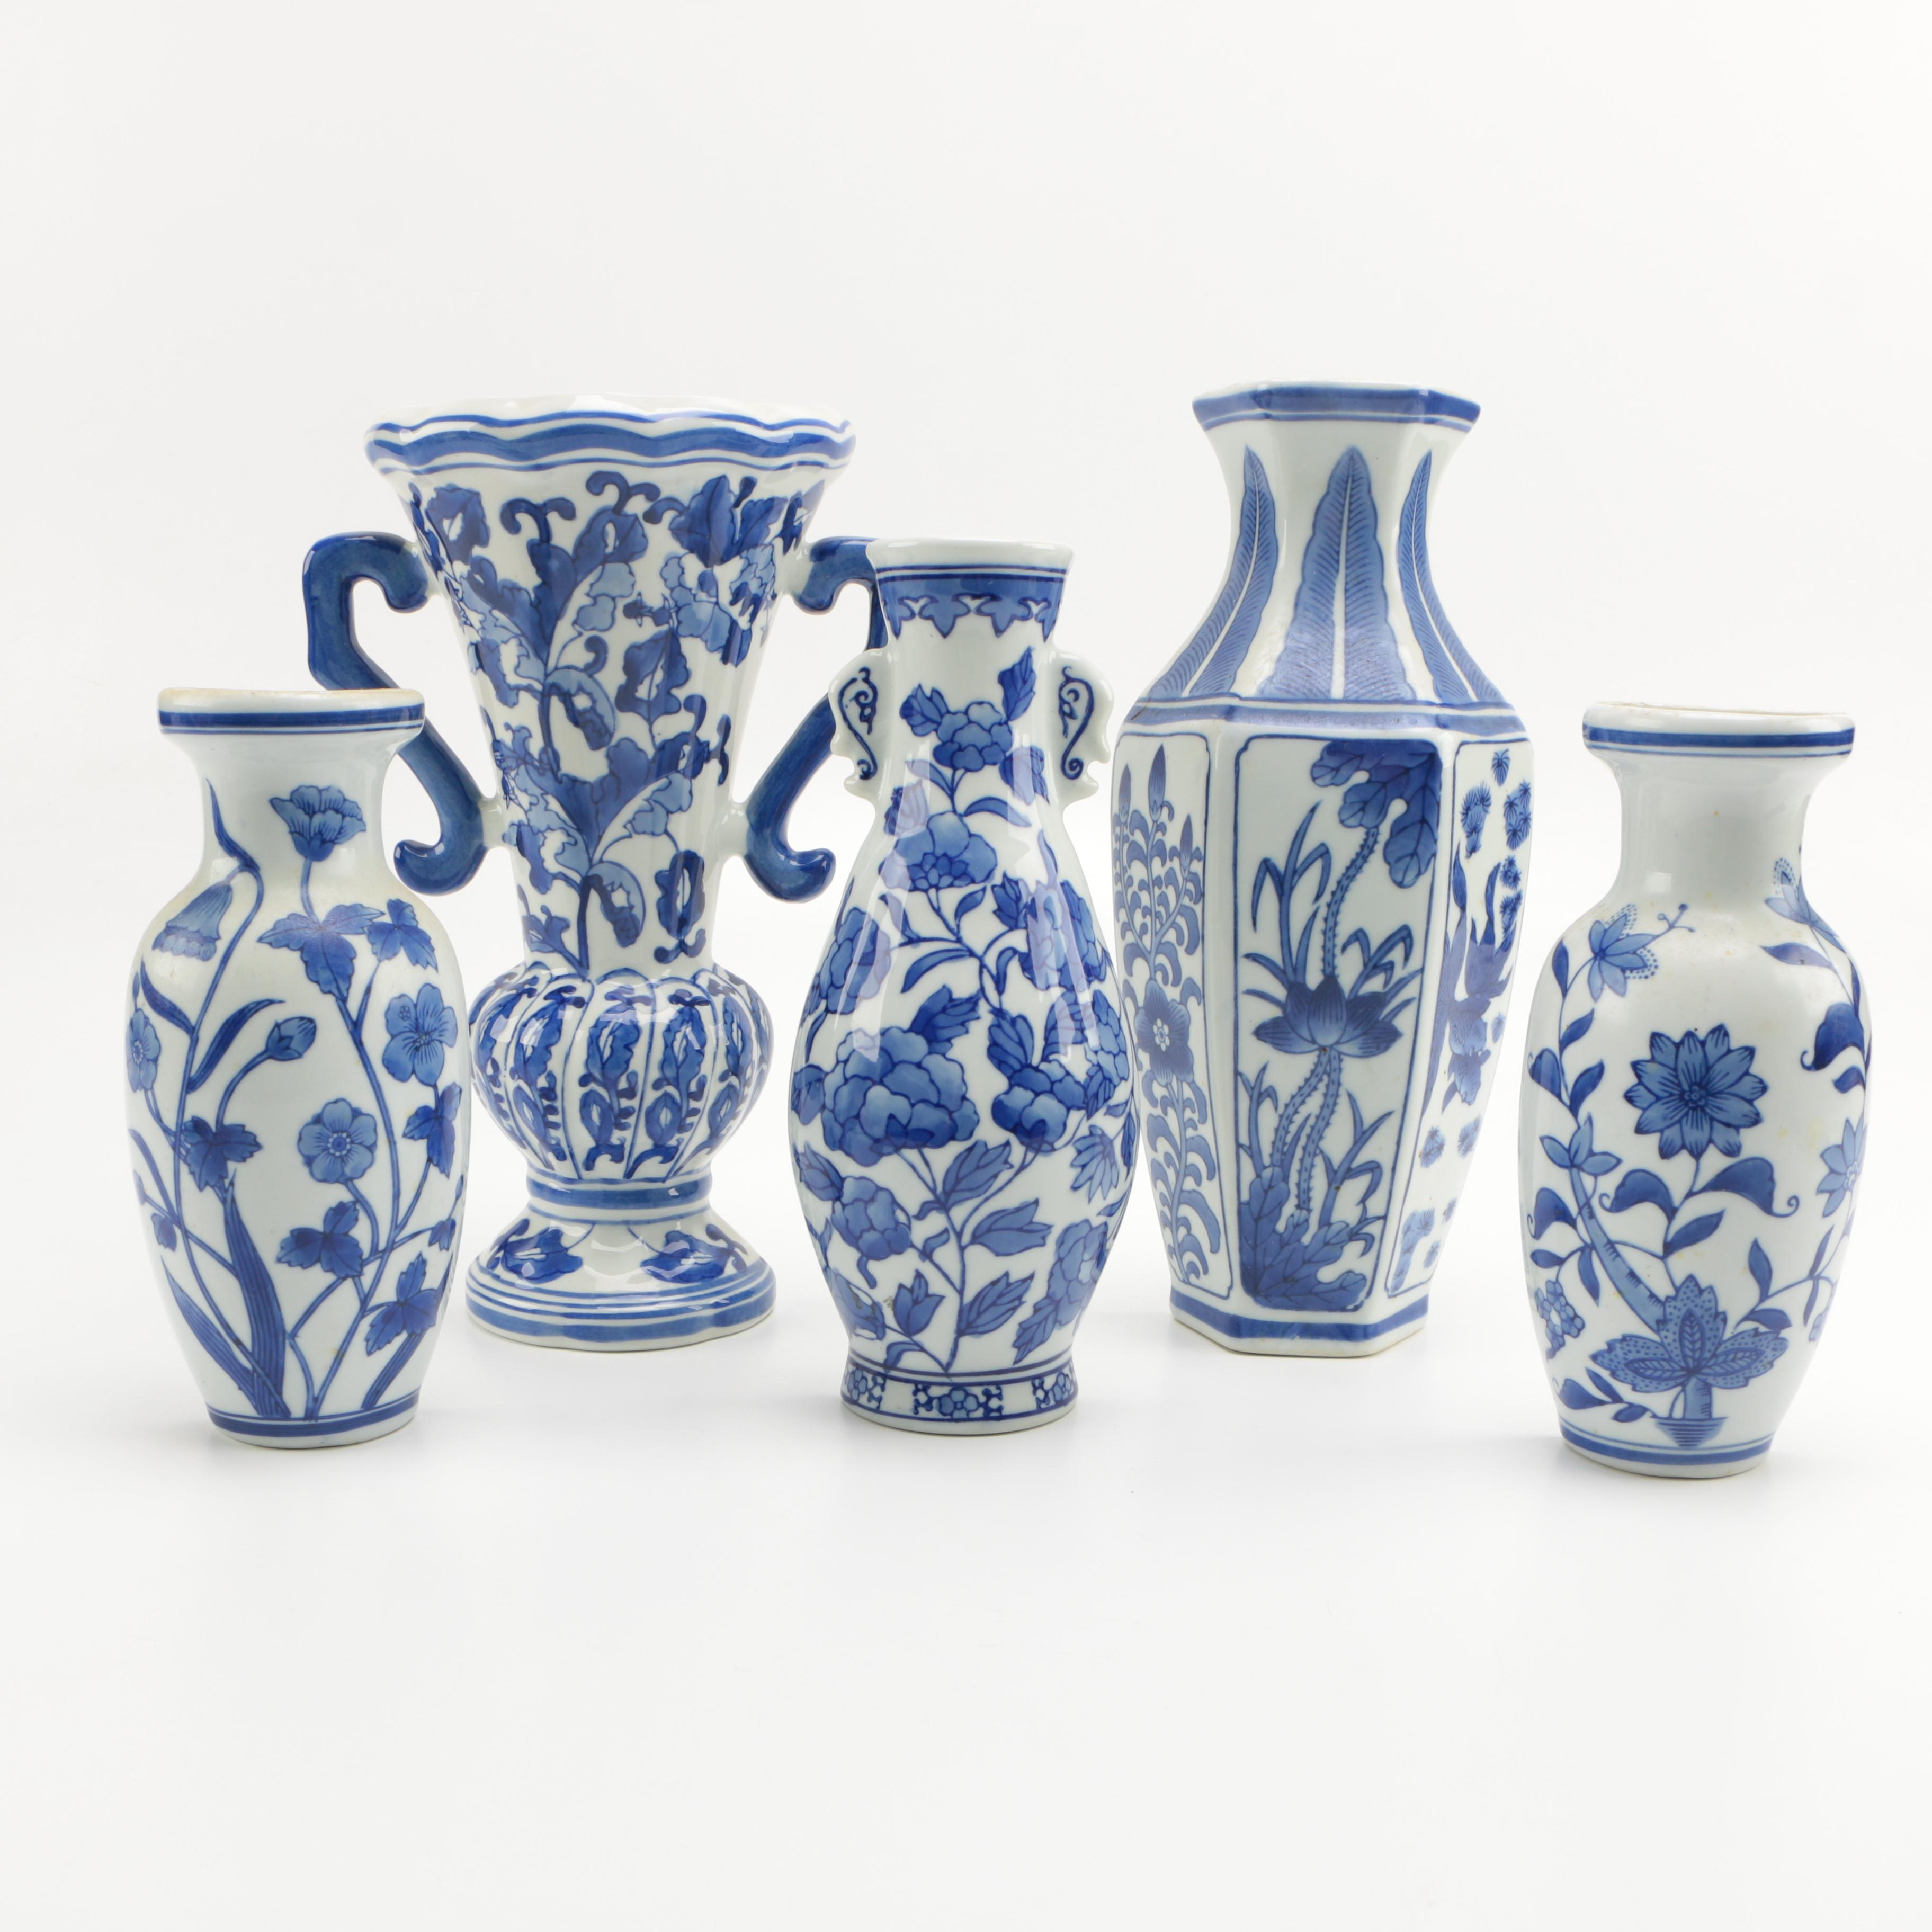 Selection of Blue and White Porcelain Wall Vases